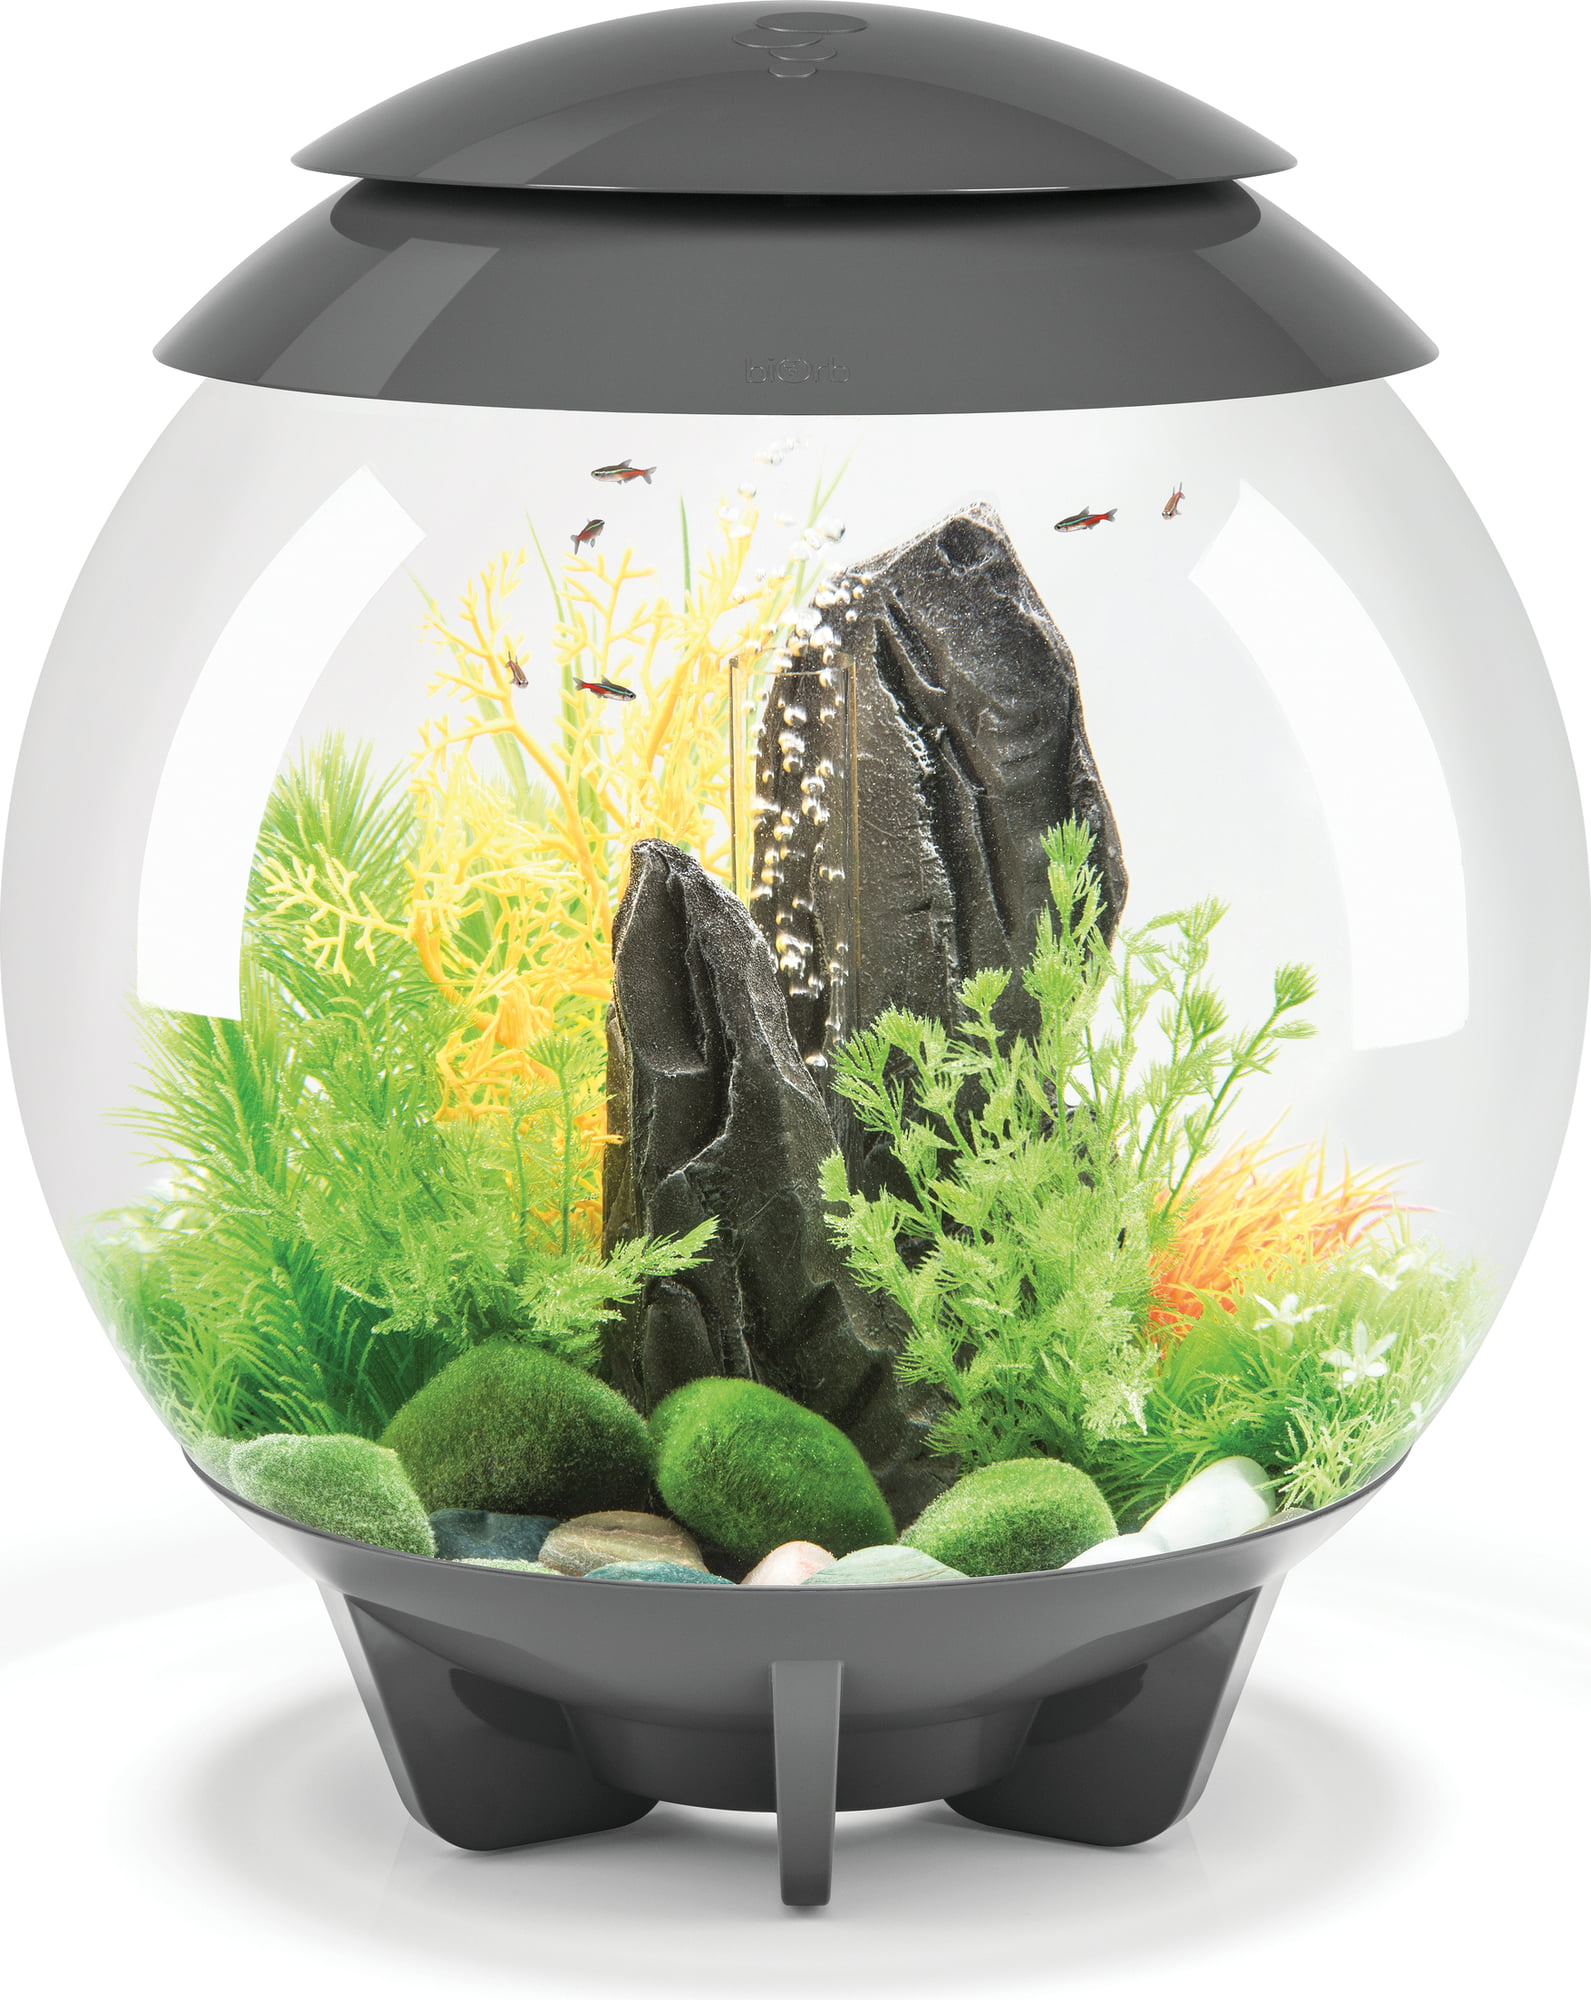 Led Licht Für Nano Aquarium Oase Biorb Halo Led 30l